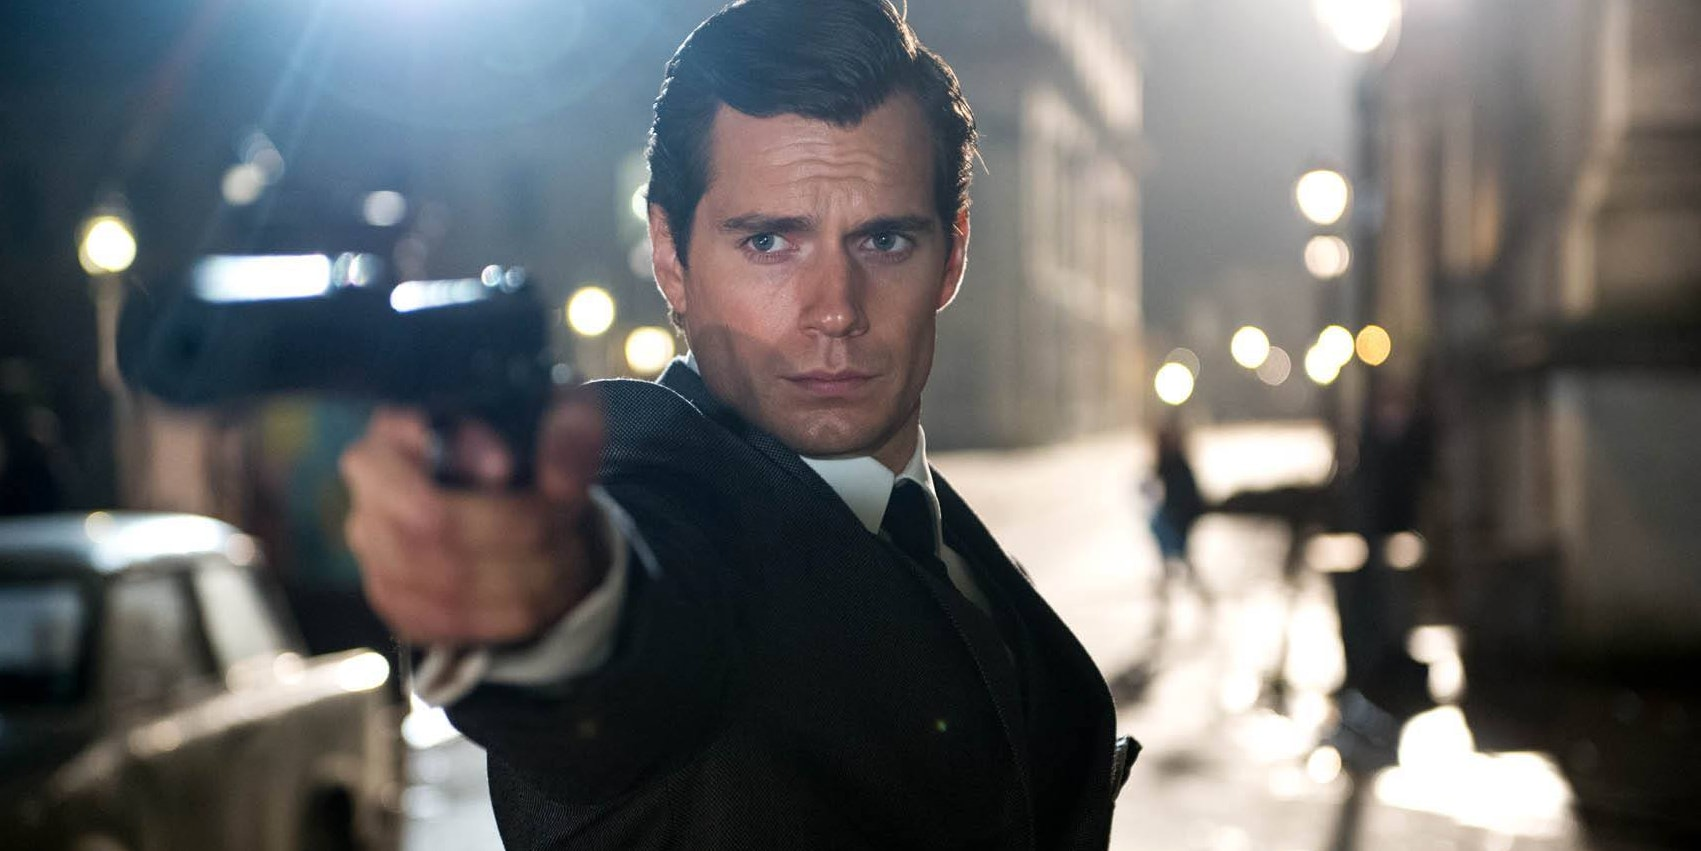 Batman Meets 'The Man From U.N.C.L.E.' Is The Superhero Movie That Needs to Happen